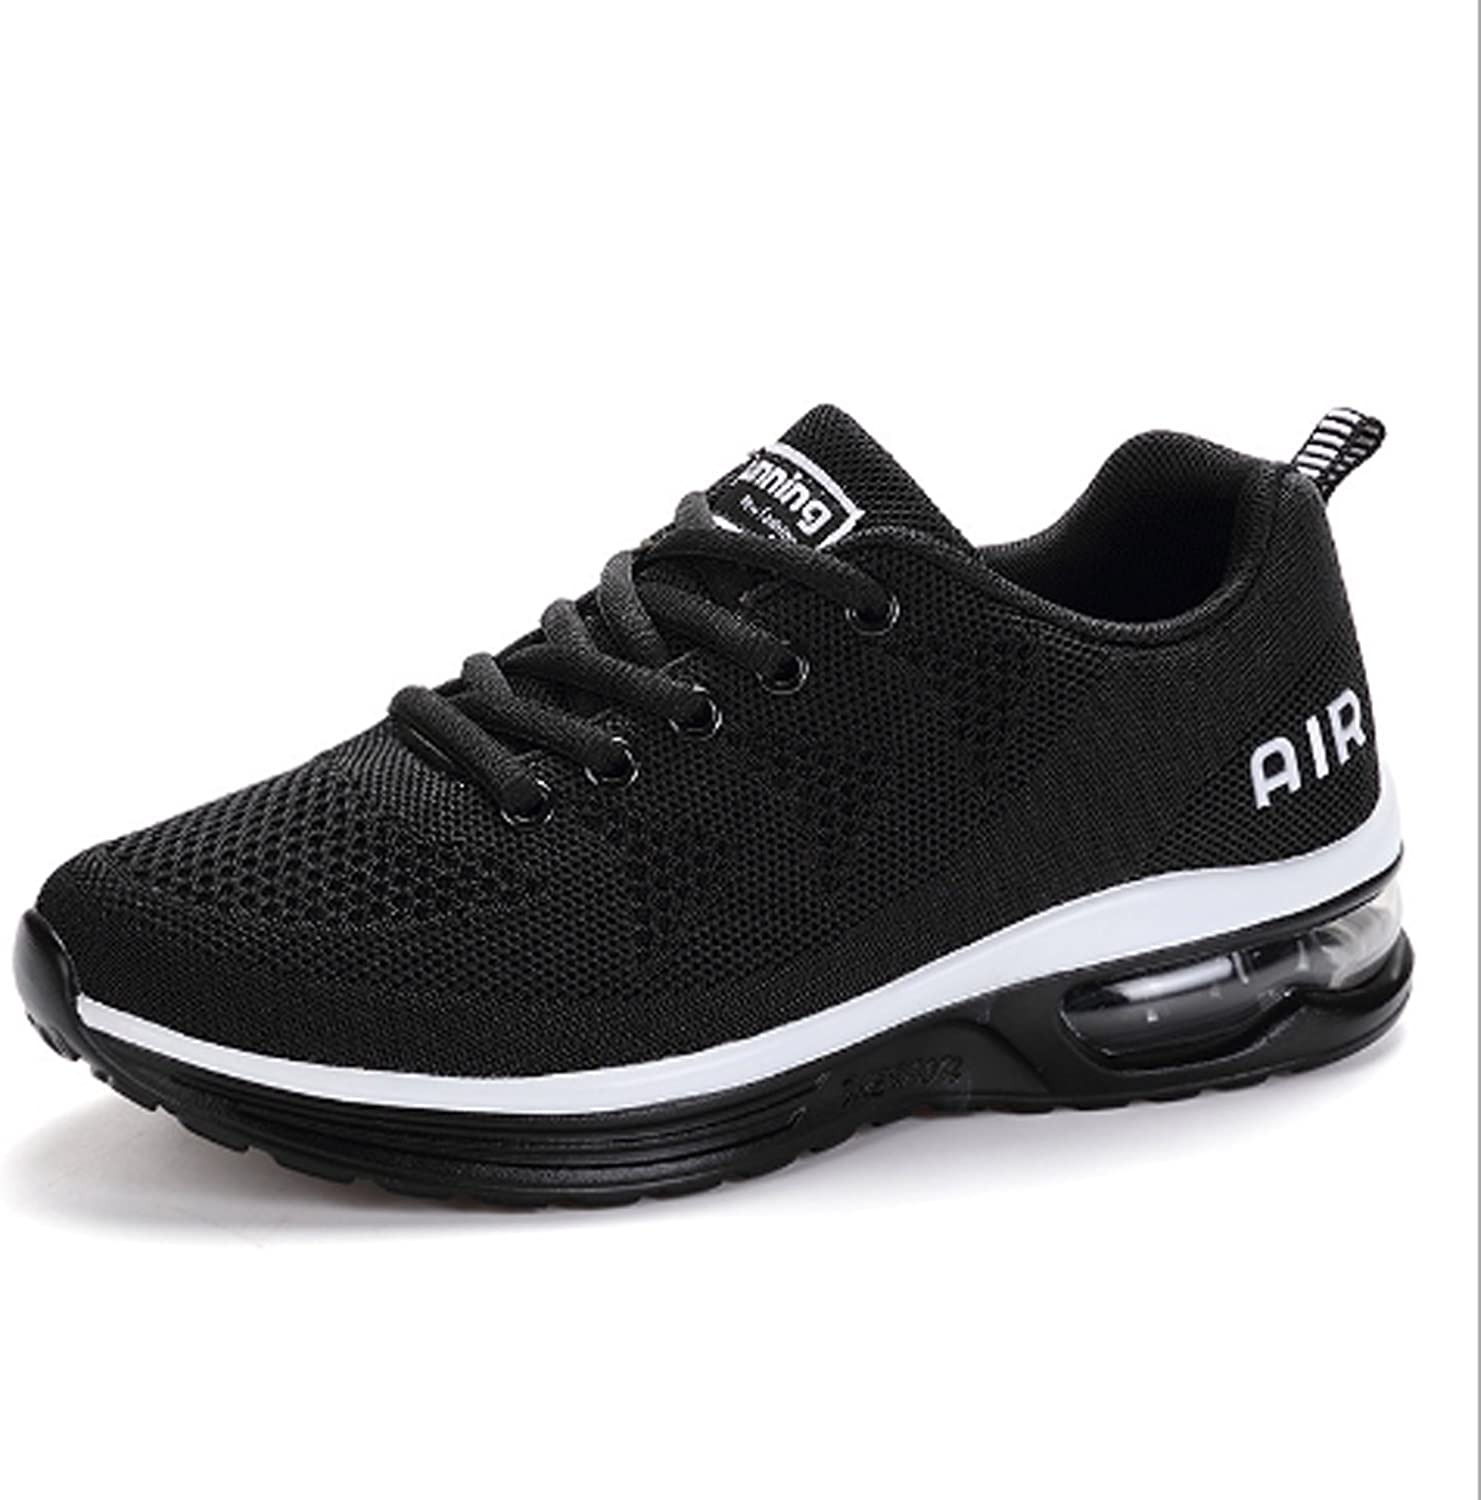 Men's Running shoes Young Fashion Breathable Fabric For Air Cushion Cushioning Soles Outdoor Sports